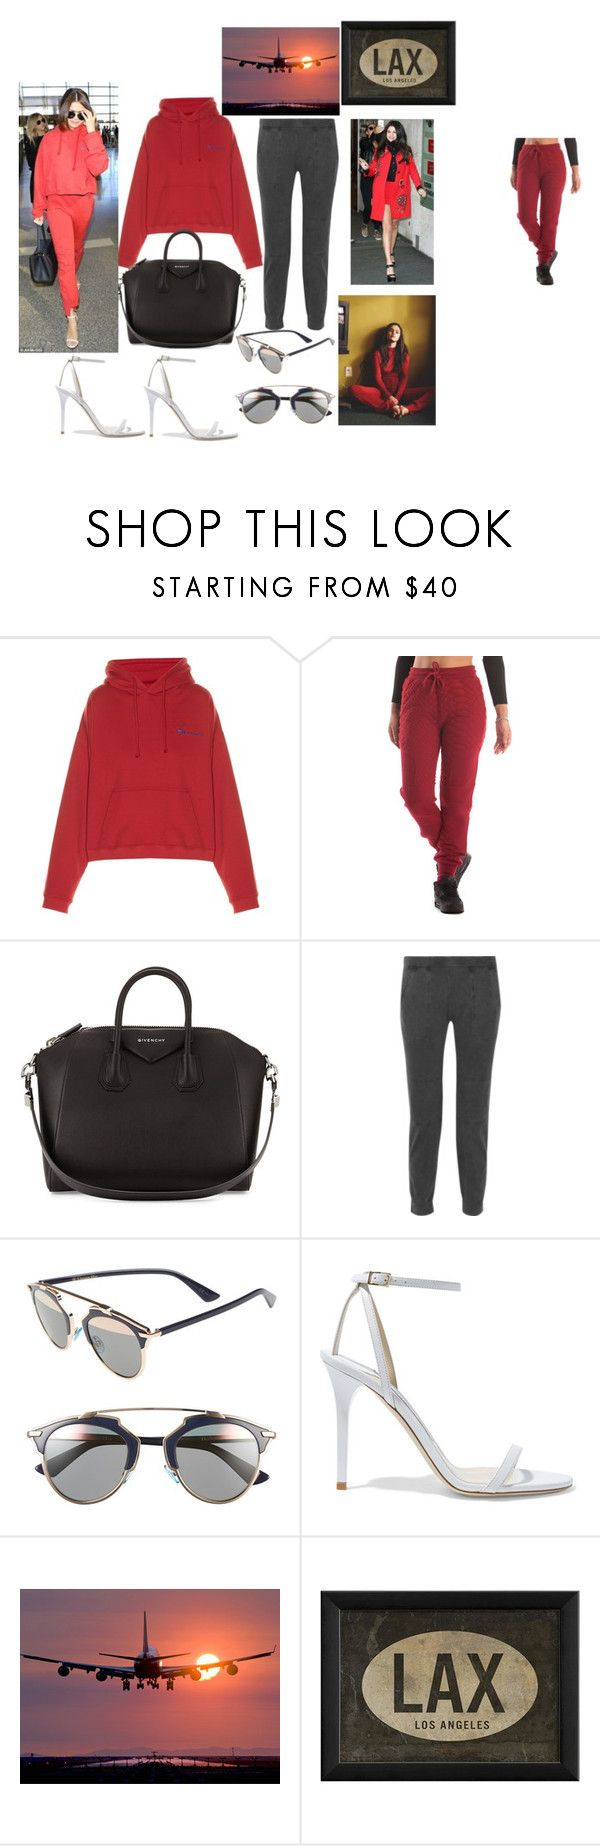 """""""Selena Gomex airport inspired look"""" by itsbrianasanders on Polyvore featuring Vetements, Crooks & Castles, Givenchy, James Perse, Christian Dior, Jimmy Choo and Spicher and Company"""